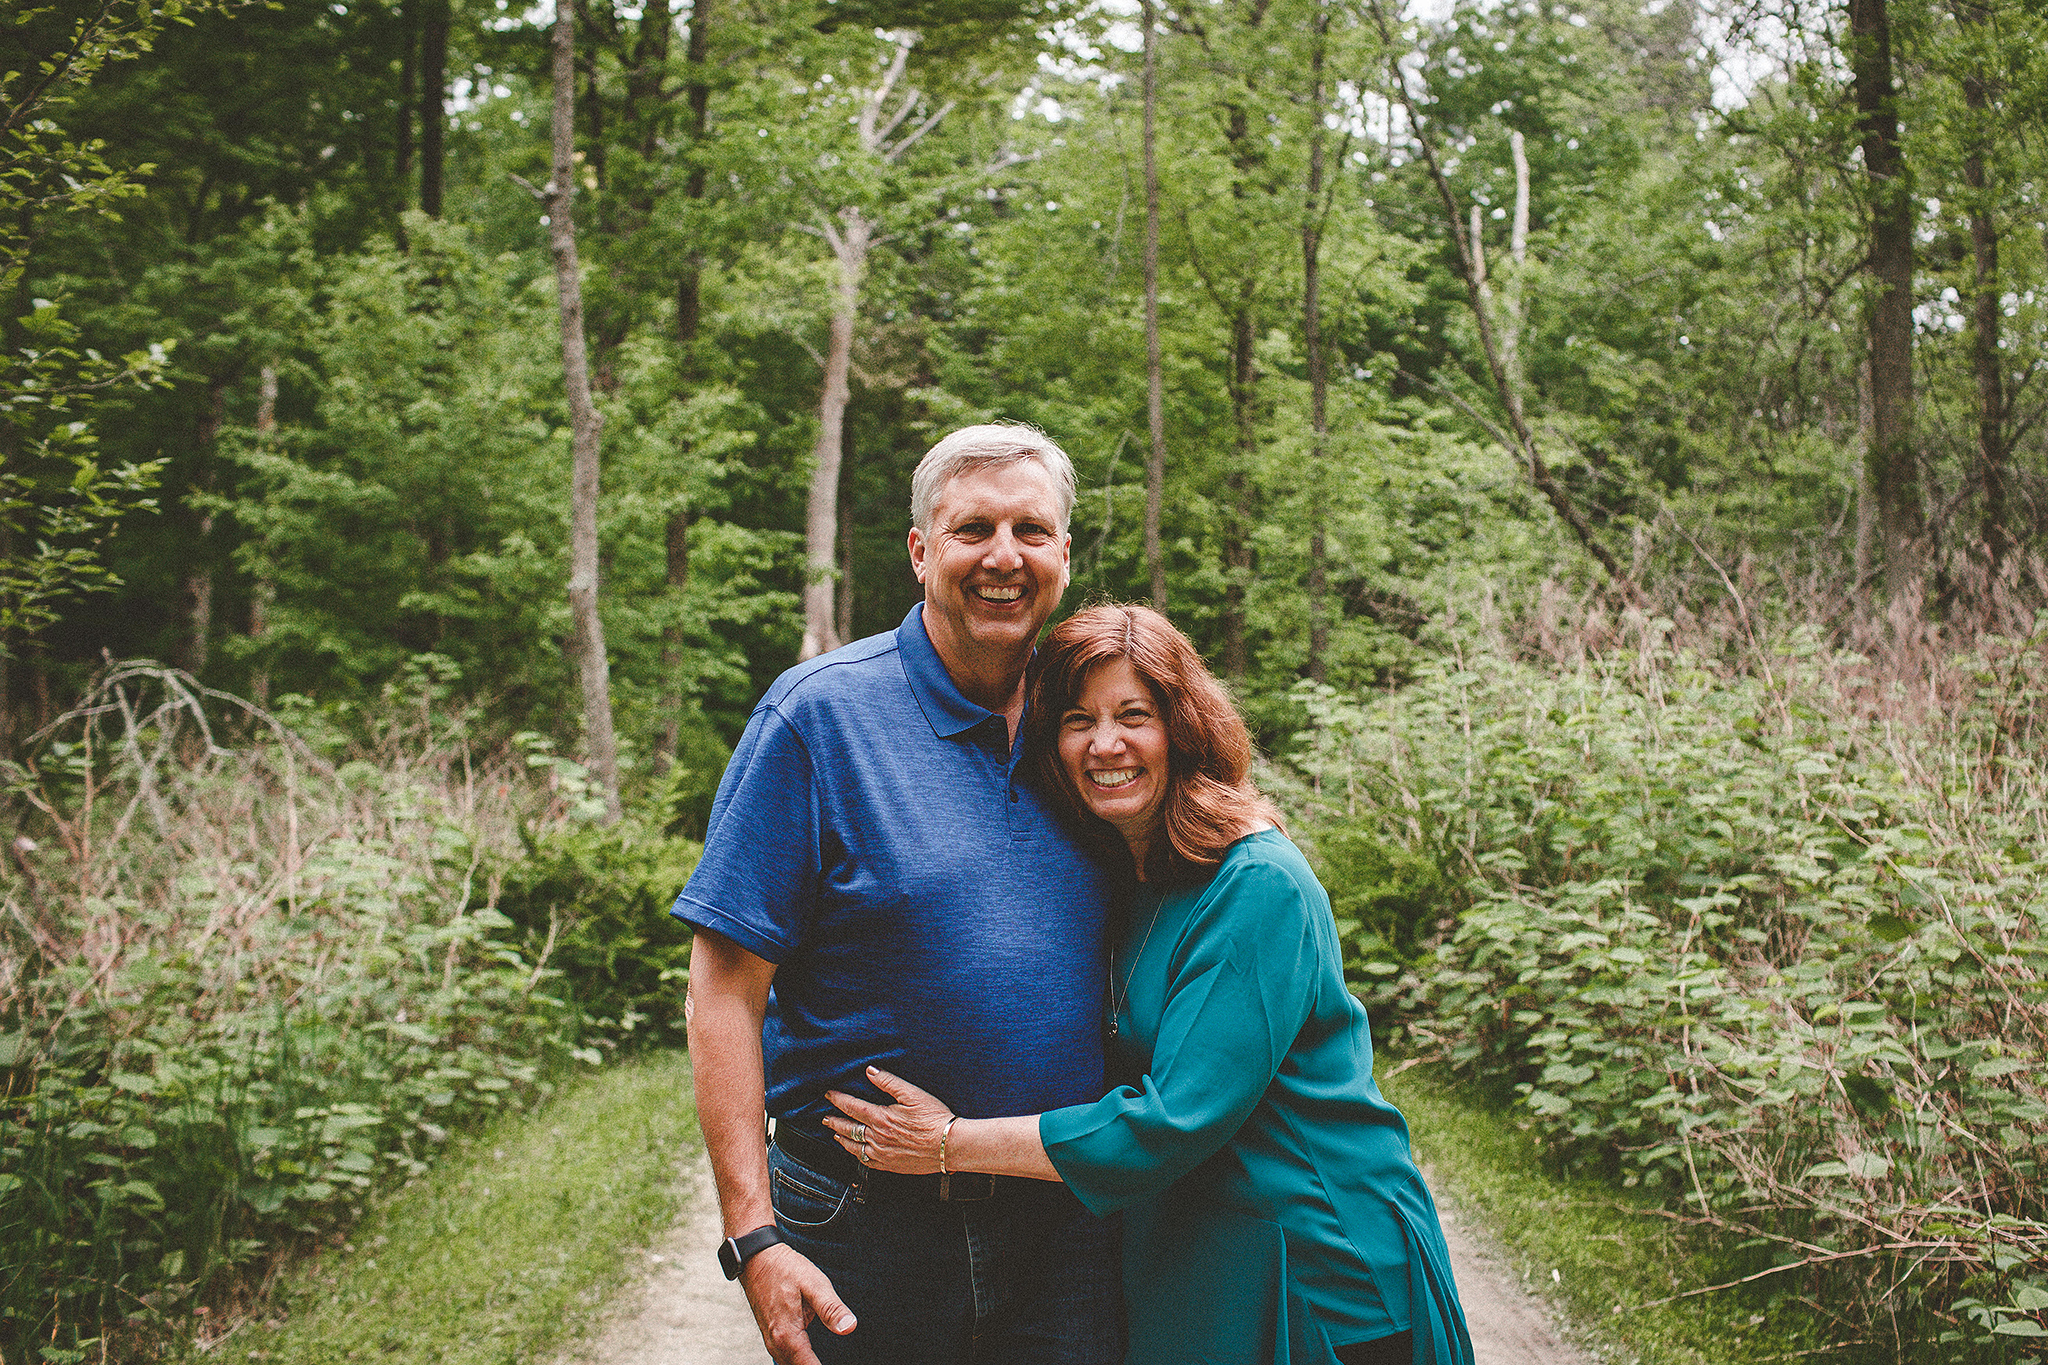 Mature couple embracing in the forest | Sheboygan, WI photographer | Chrissy Deming photography